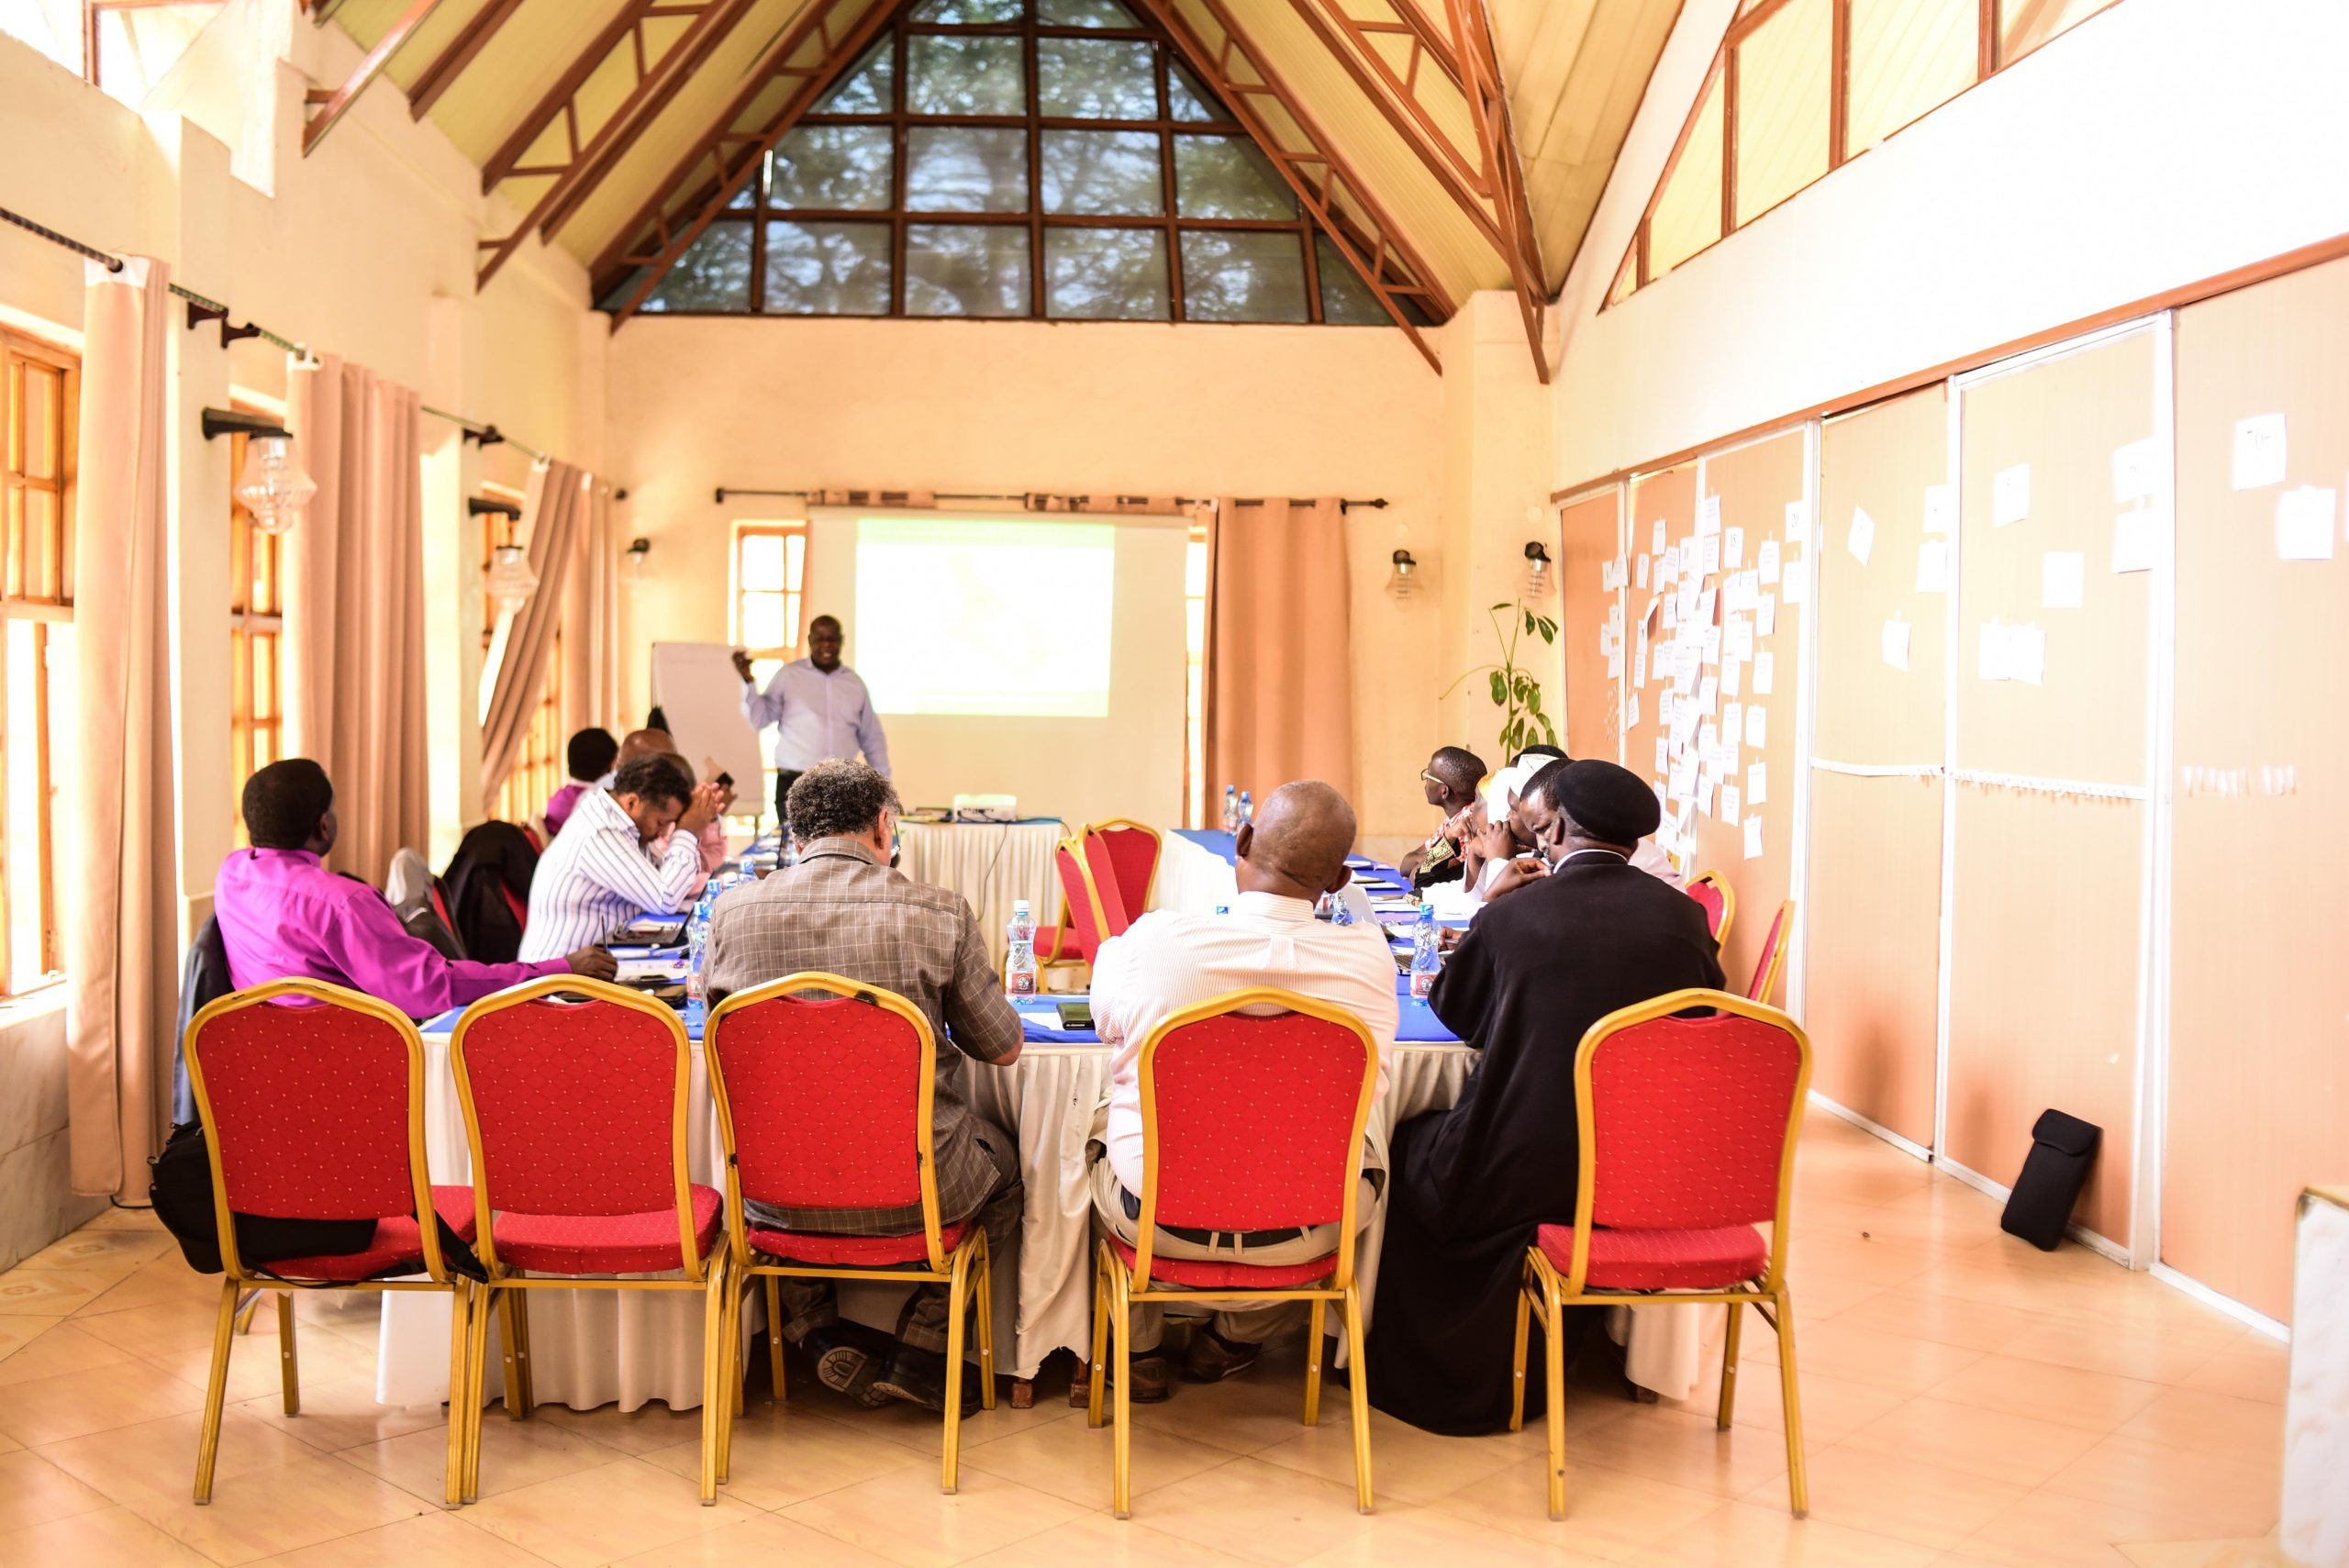 Role of Religious Leaders in Addressing Issues Affecting Adolescent